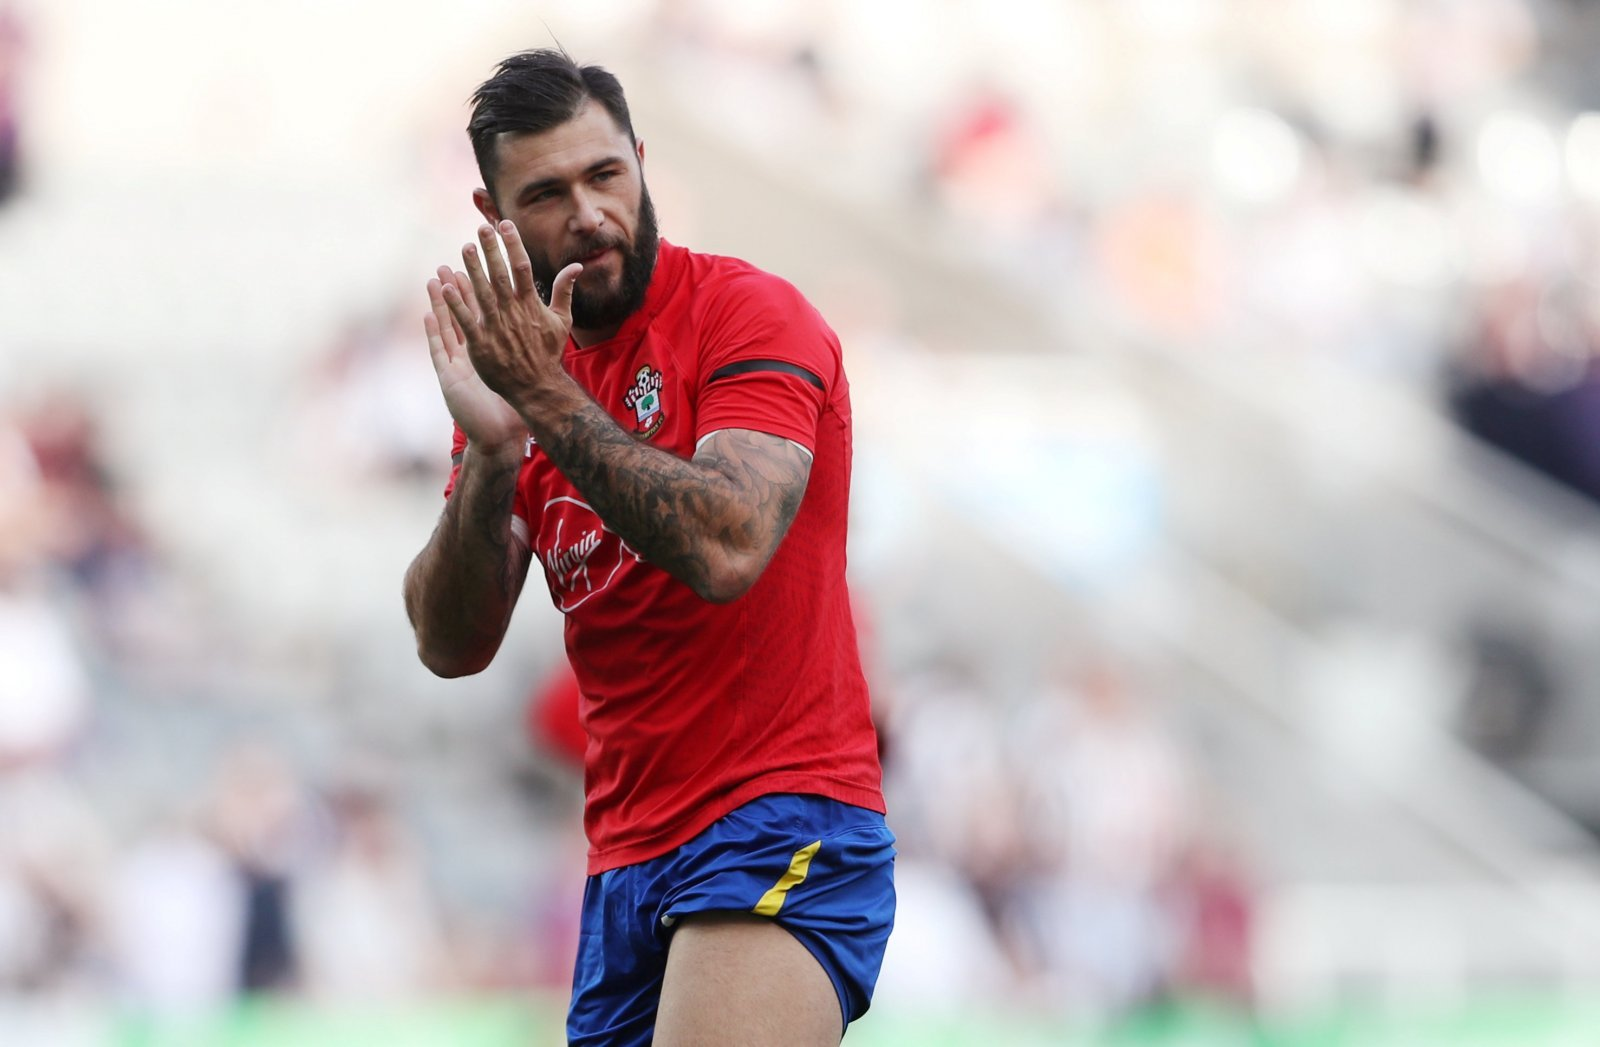 Southampton: Stalemate means Charlie Austin could be stuck in wilderness this season